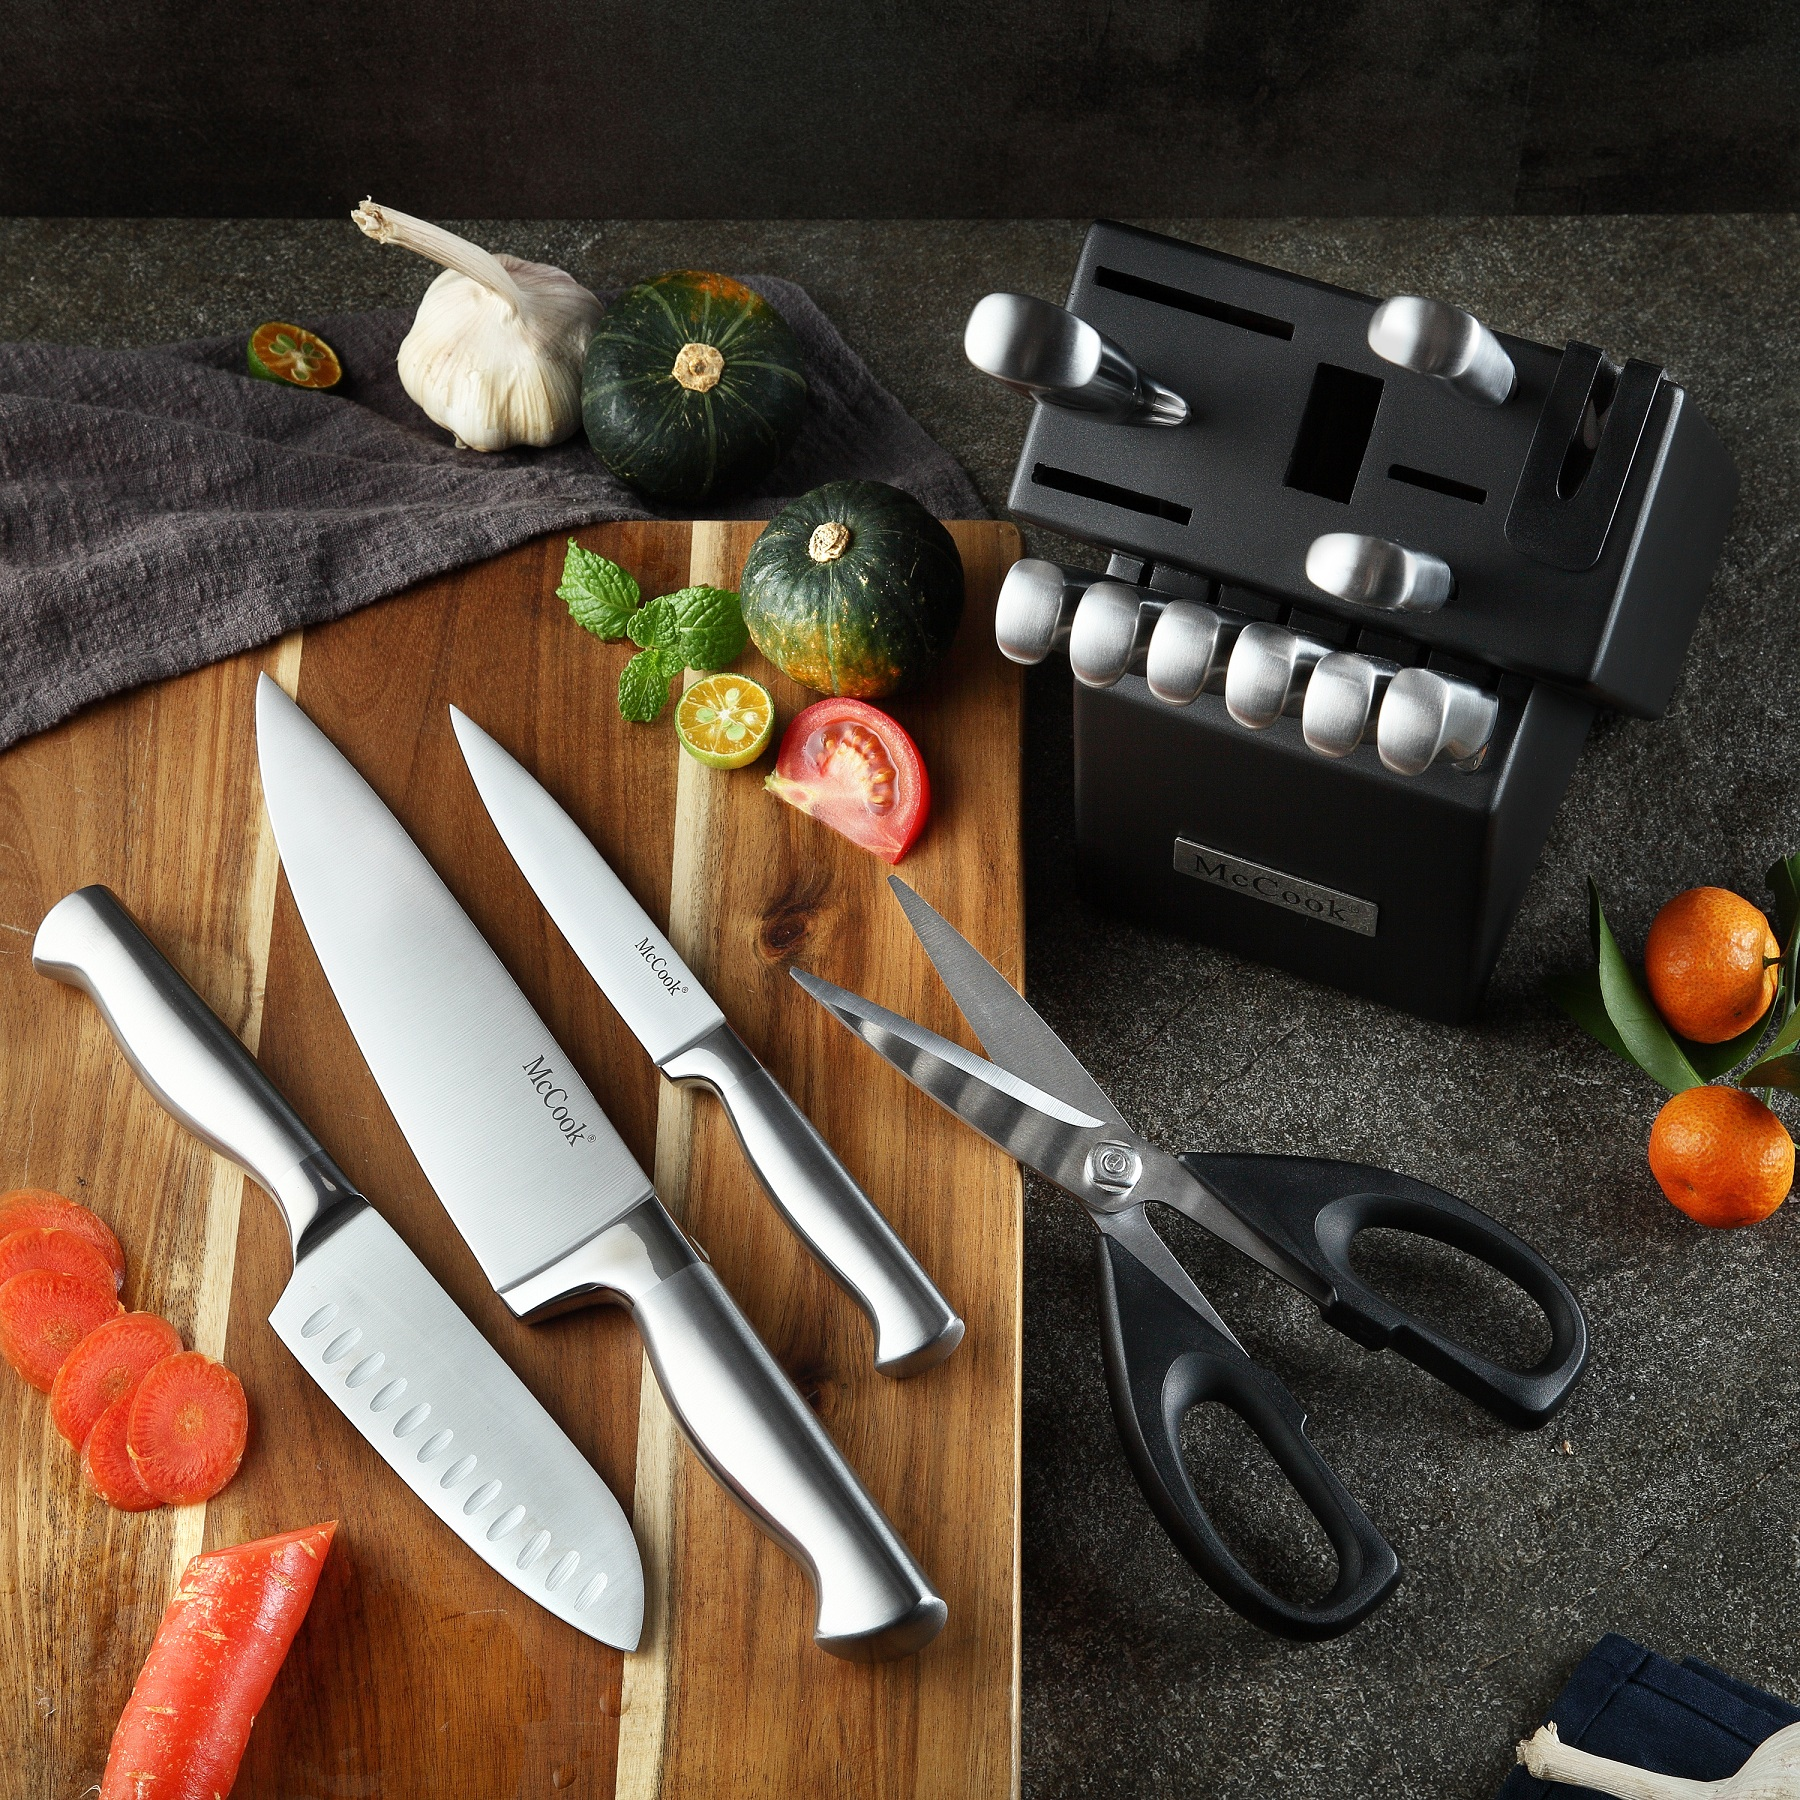 McCook-MC21-Knife-Sets15-Pieces-German-Stainless-Steel-Kitchen-Knife-Block-Sets-with-Built-in-Sharpener